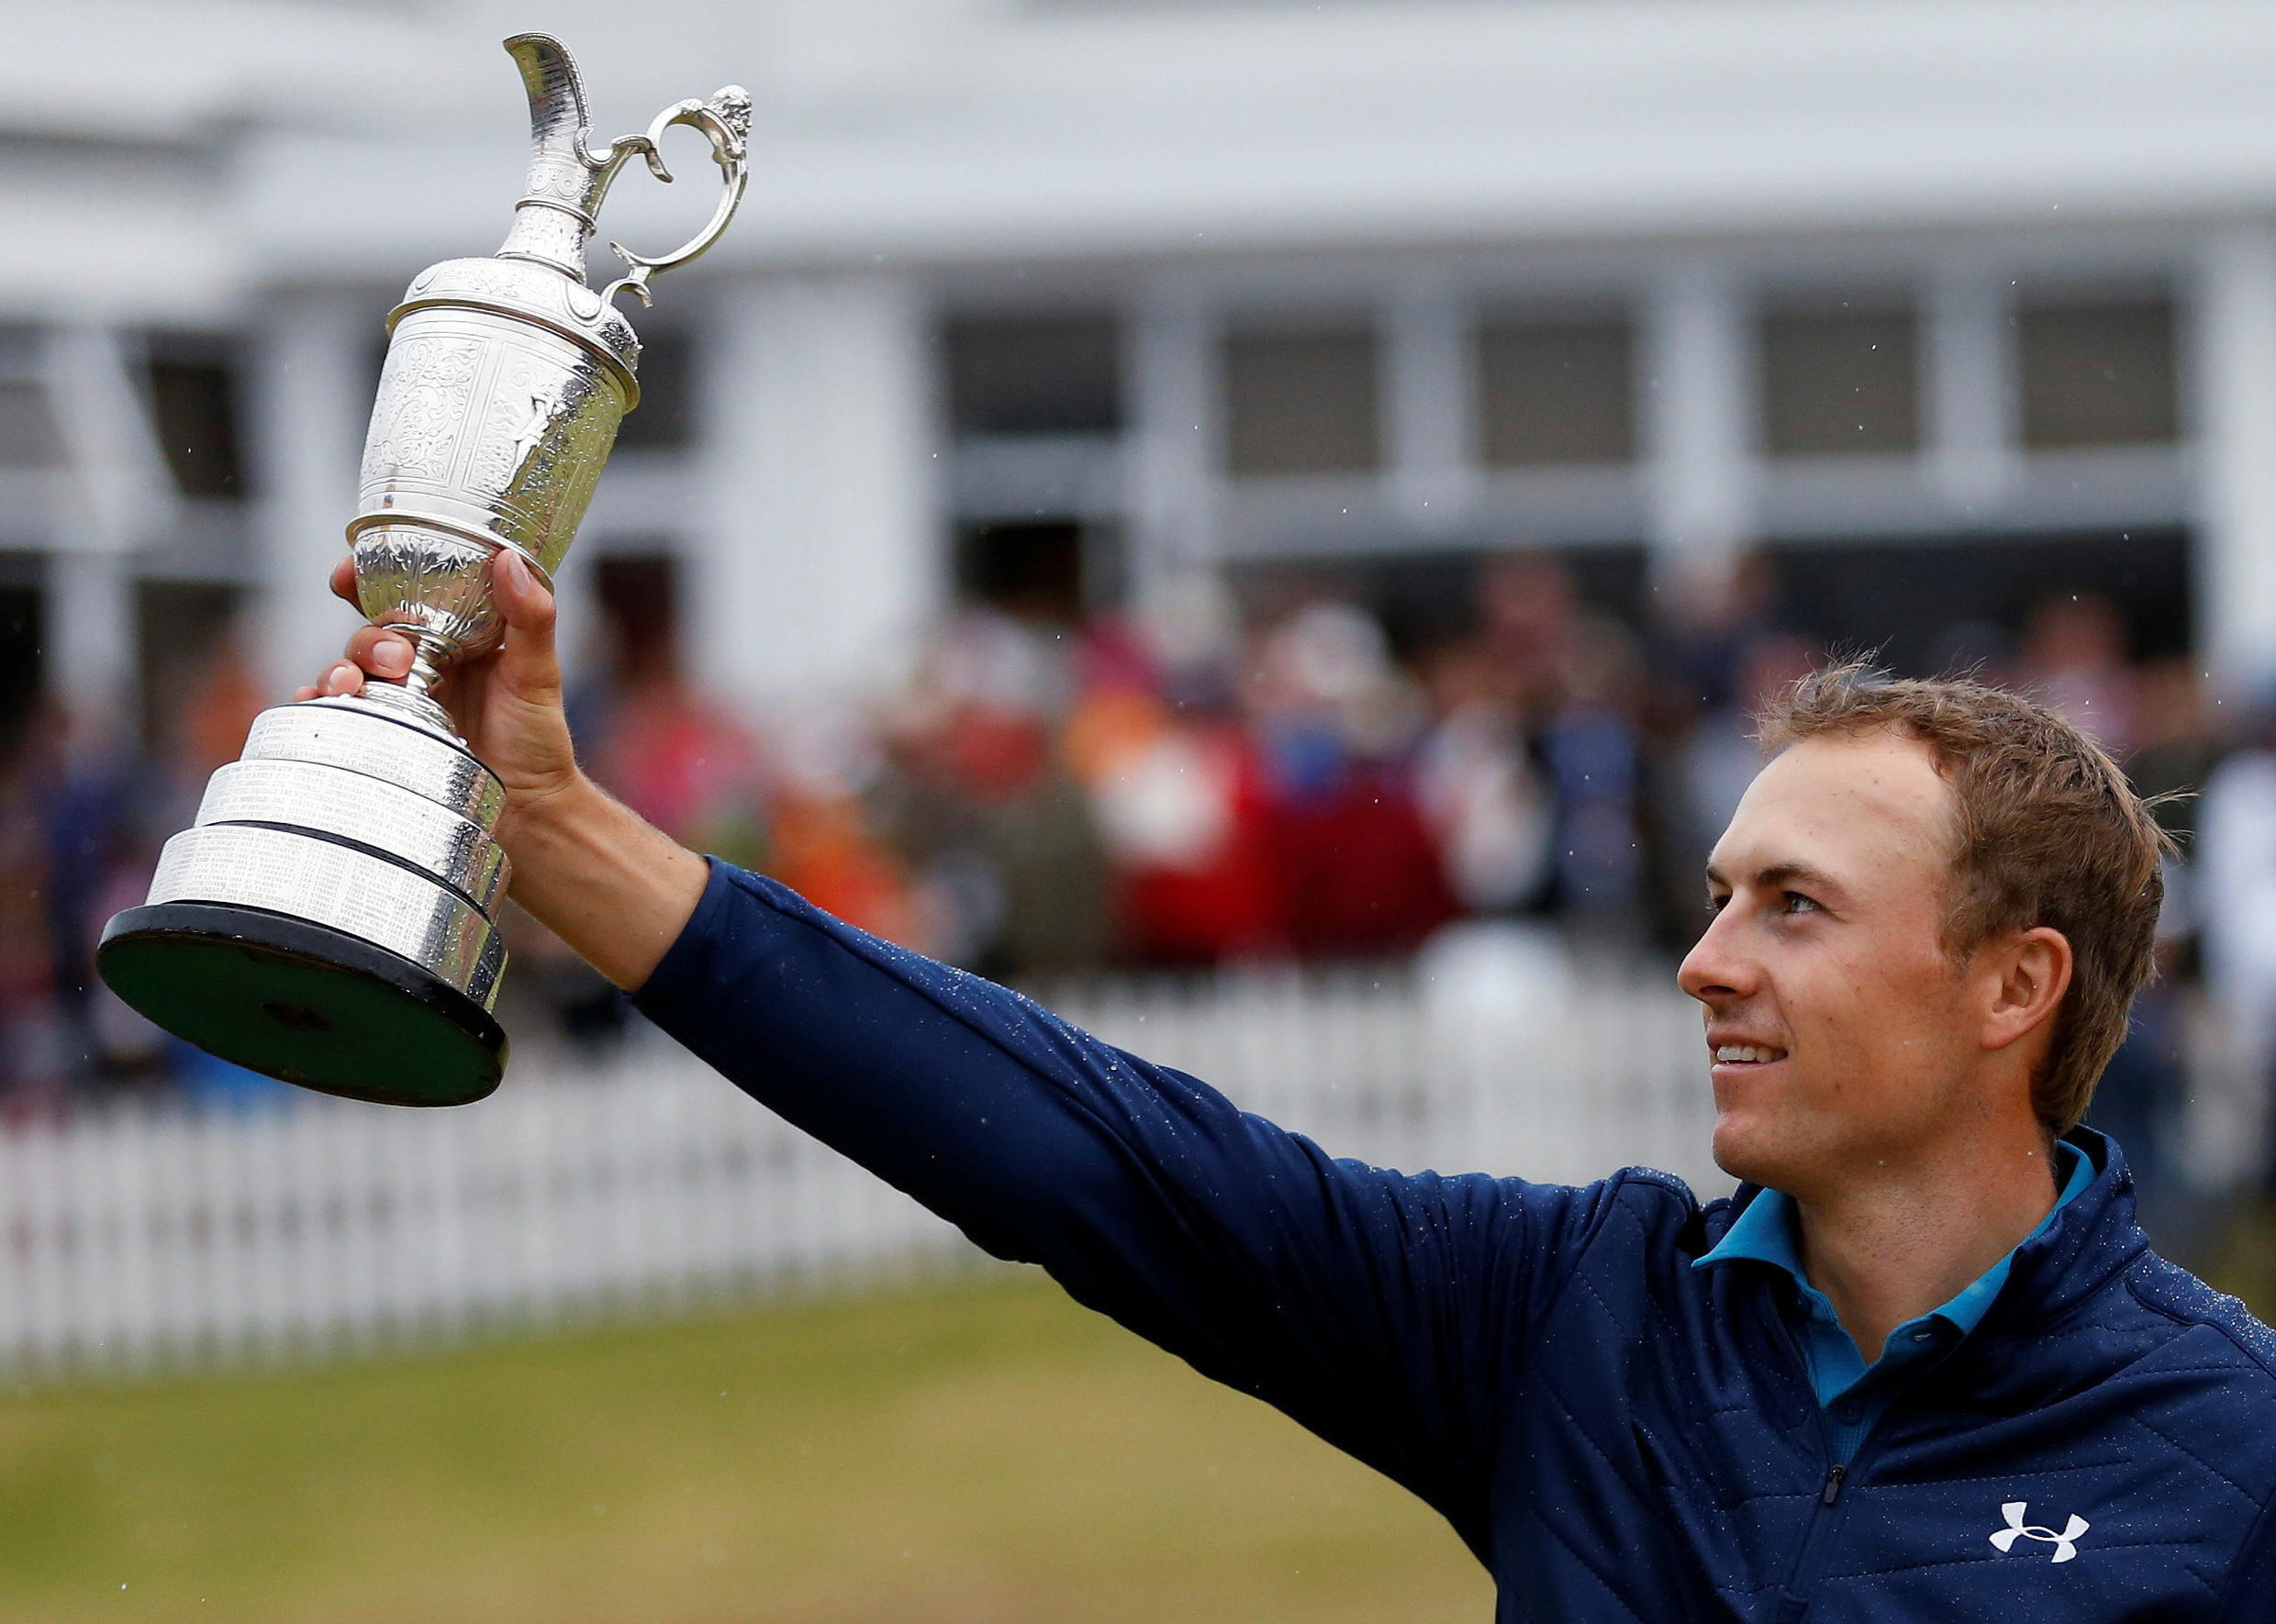 Jordan Spieth added the British Open prize to his collection which includes trophies from the Masters as well as the US Open.